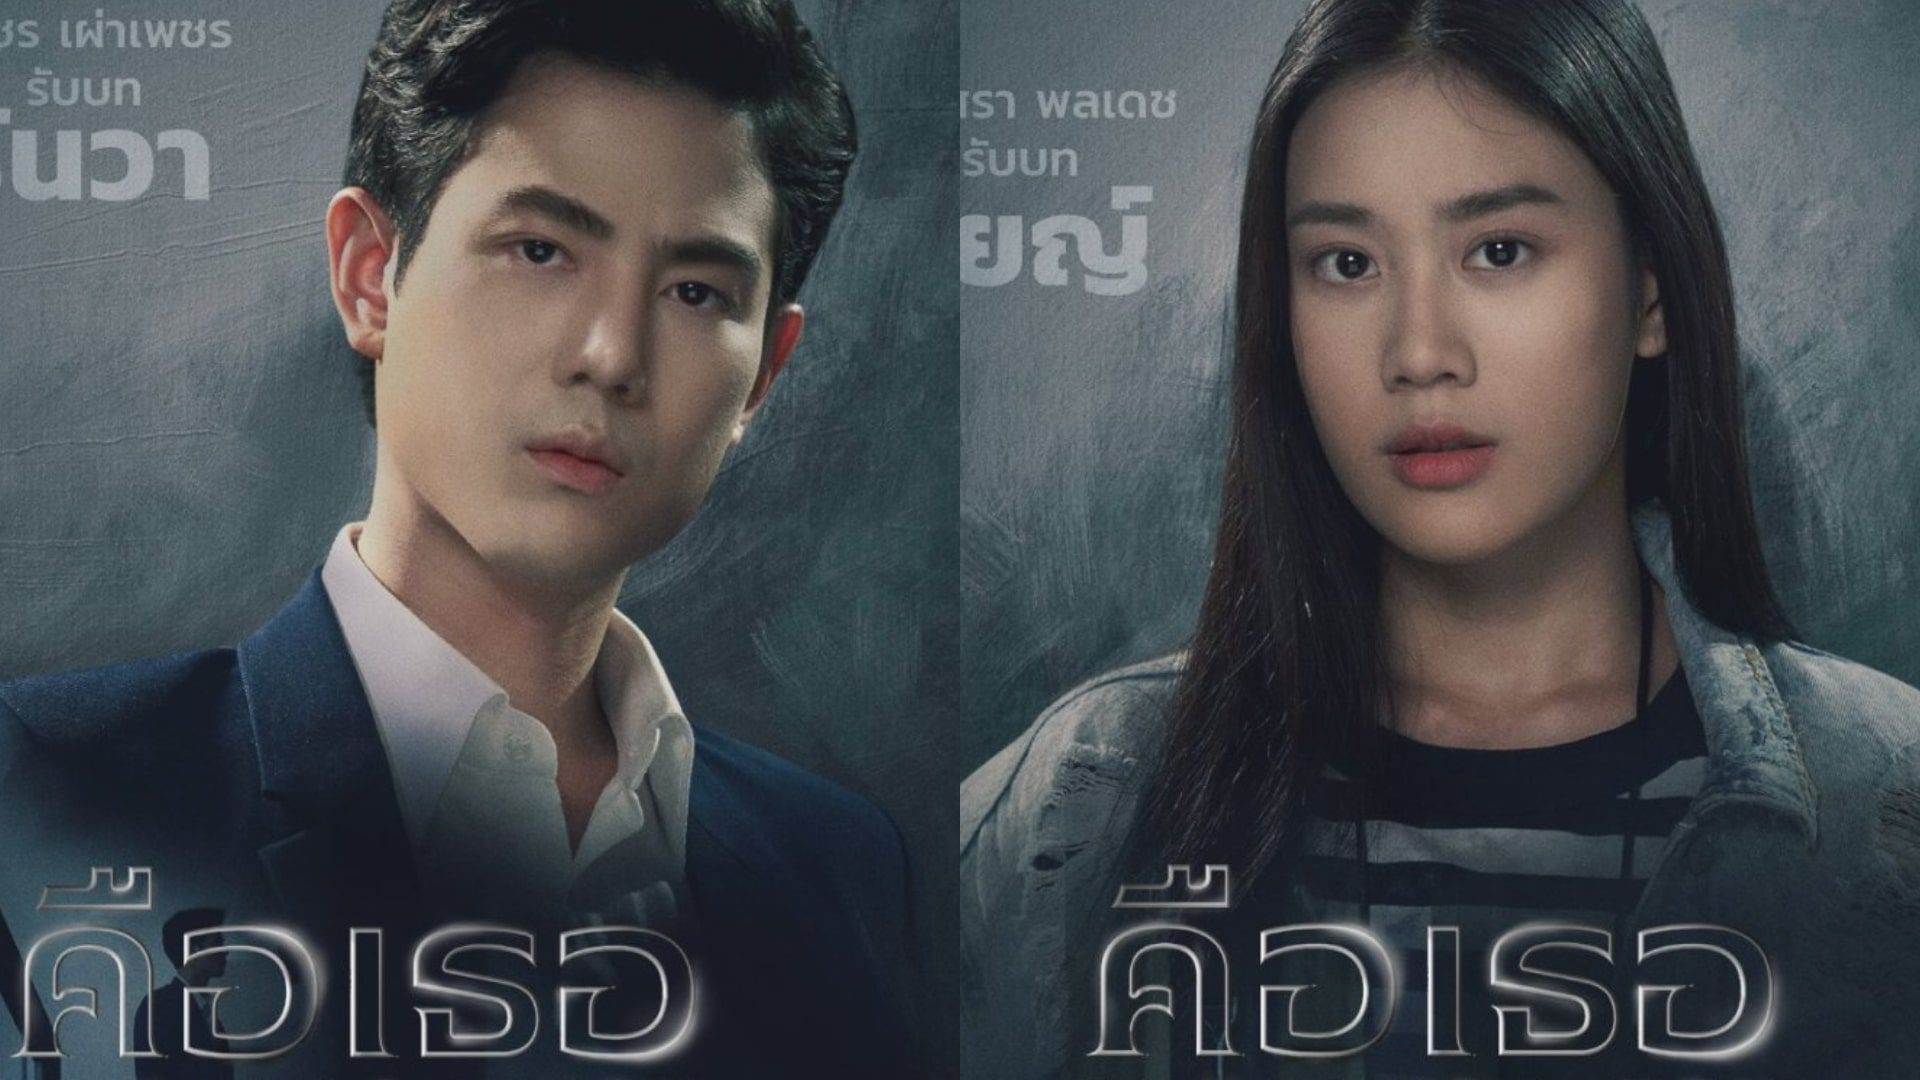 Remember You (2021) Episode 3 Release Date